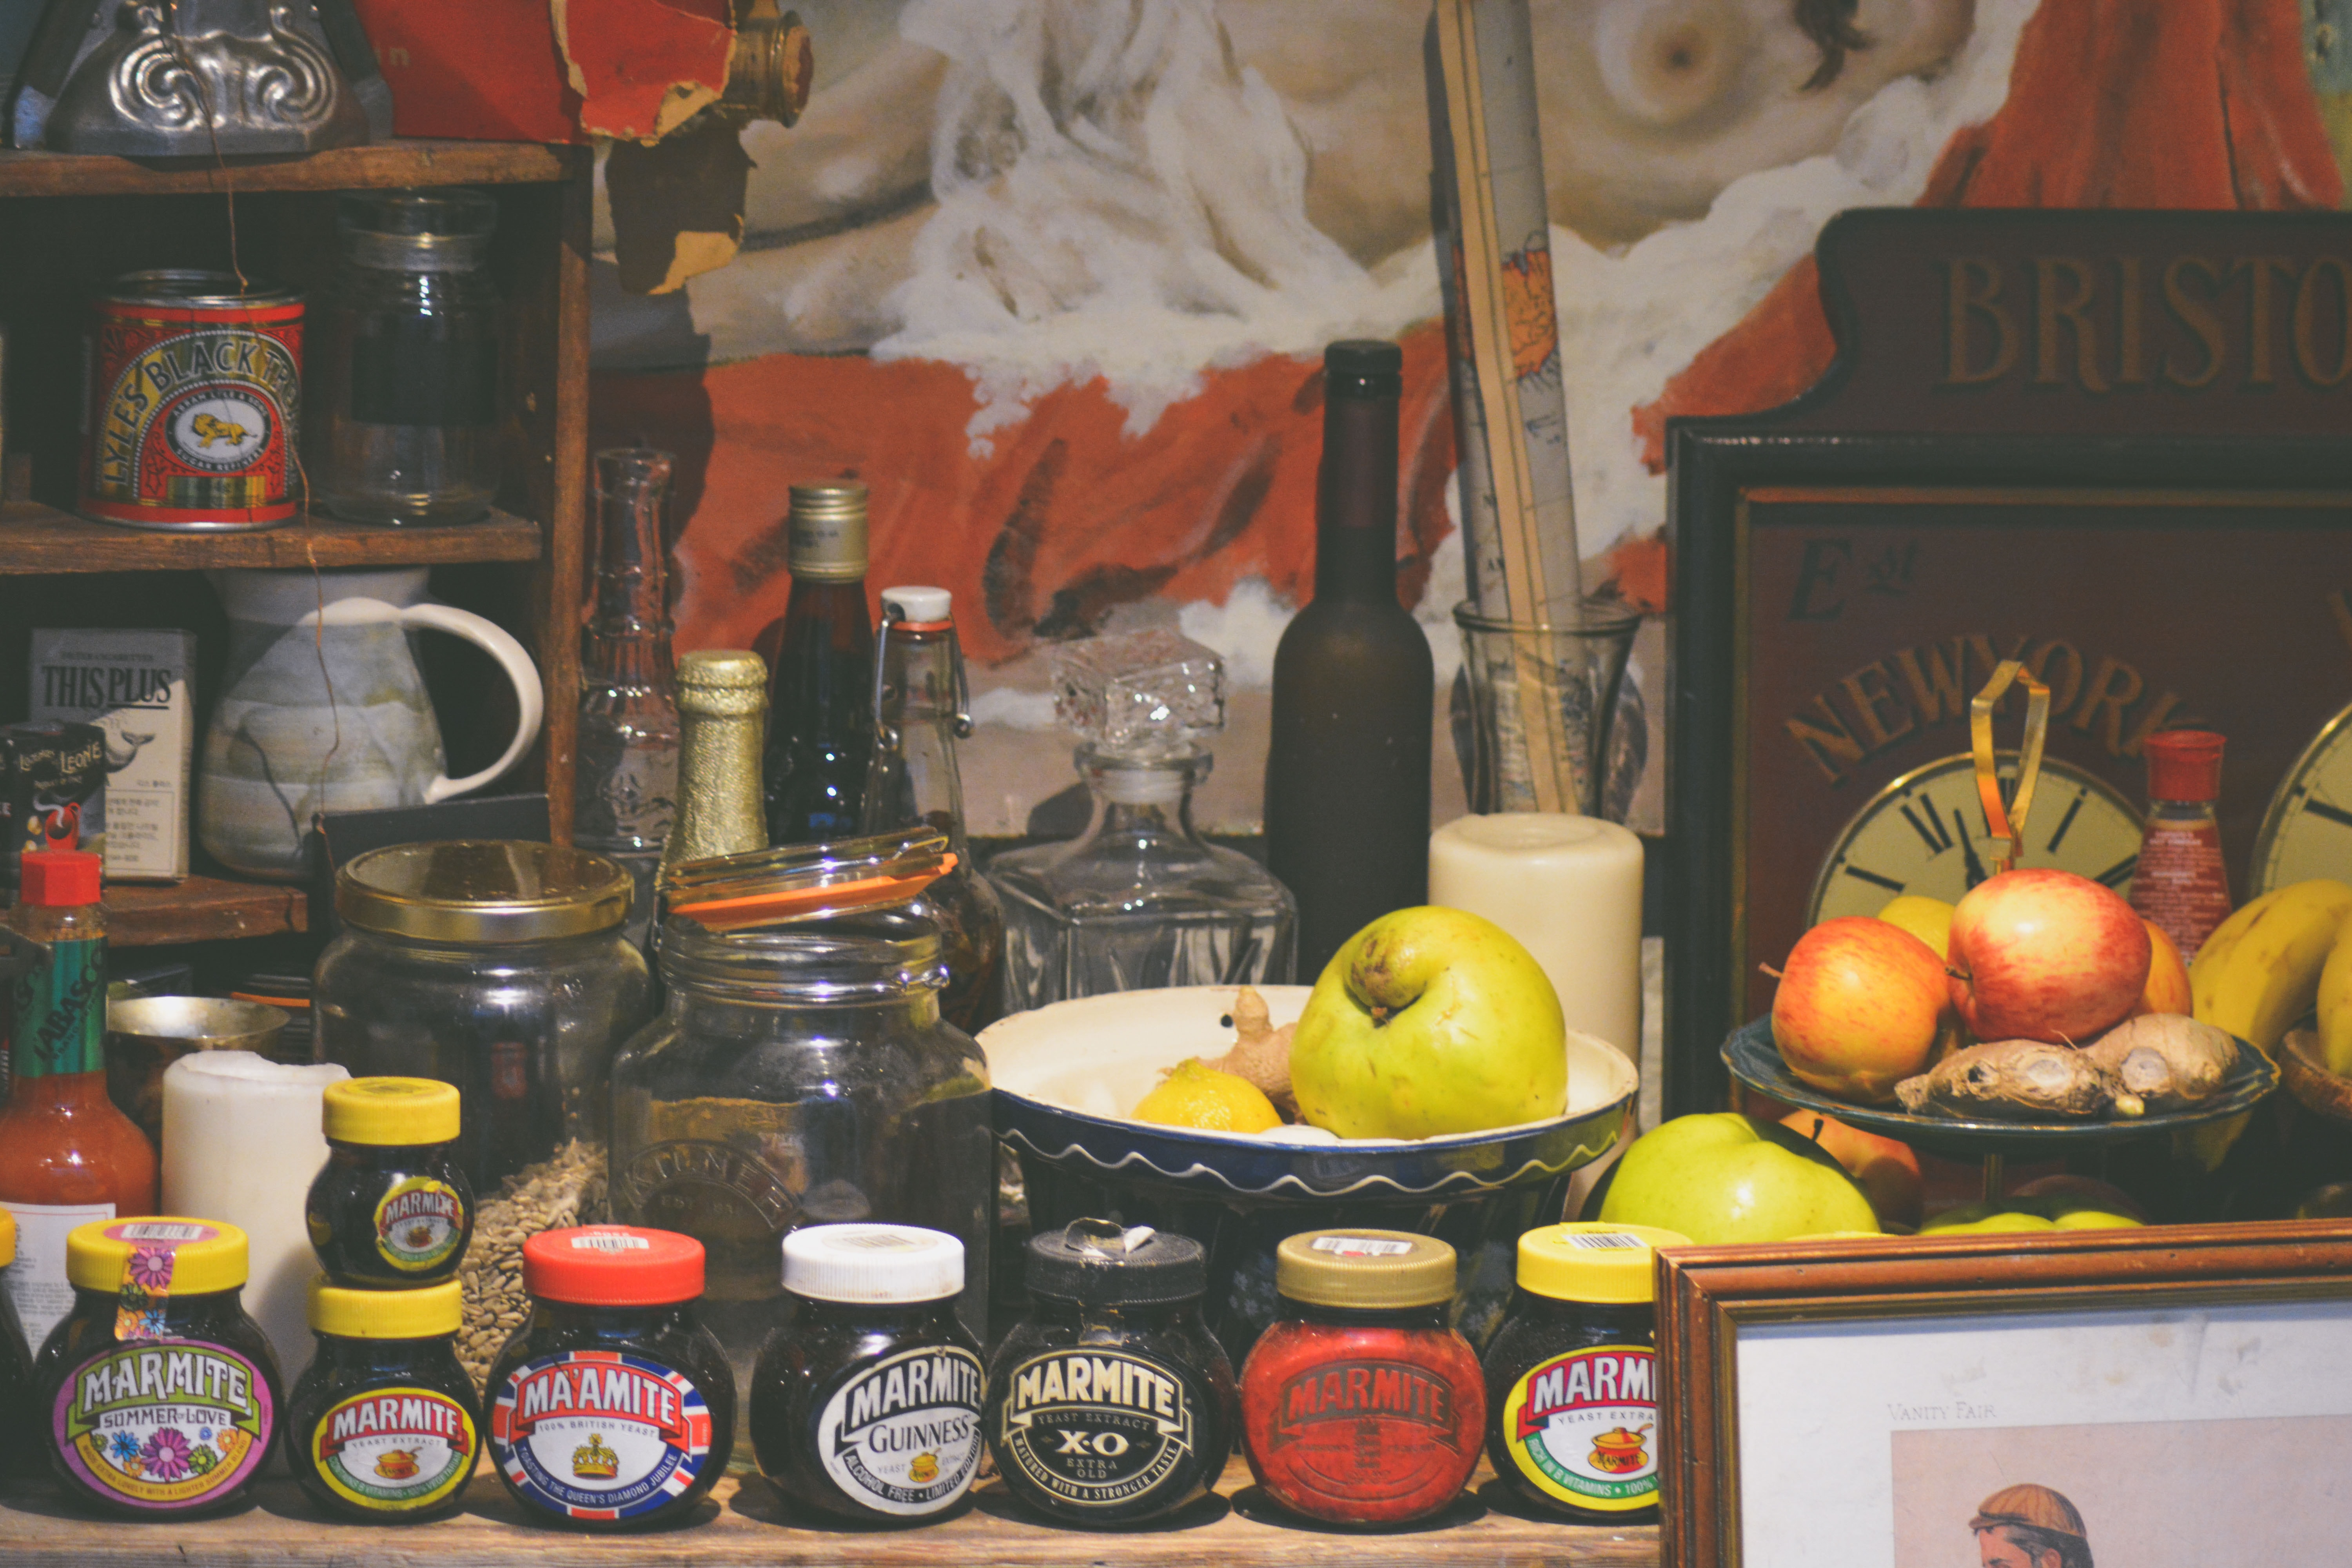 A busy shelf with a row of Marmite jars, fruit bowls, empty jars and wine bottles